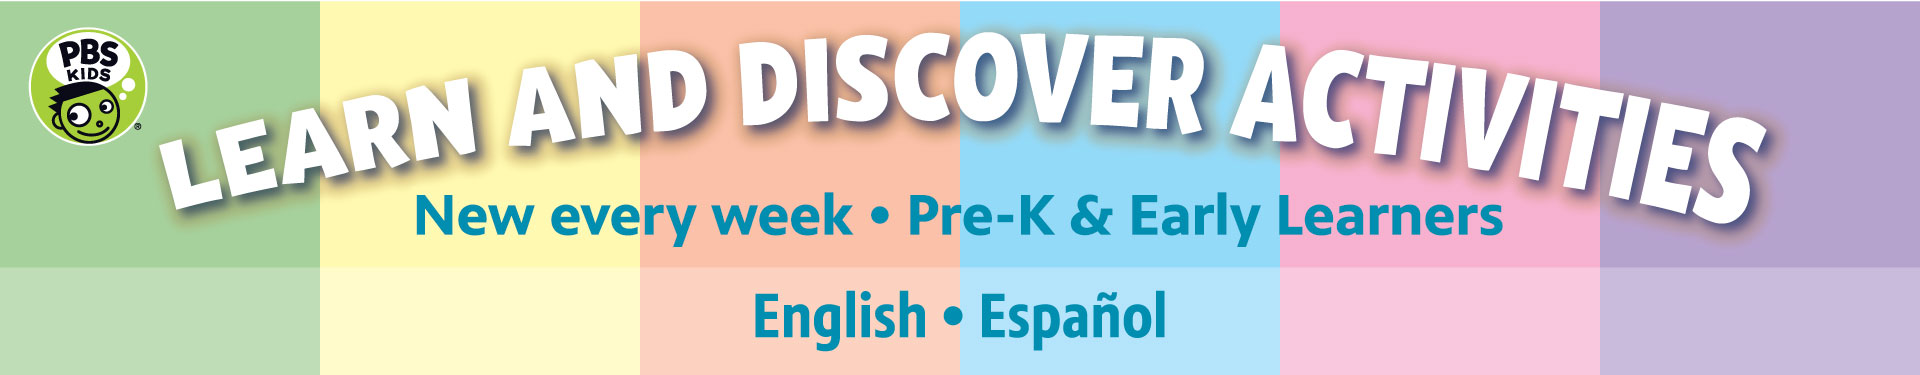 Learn and Discover Activities